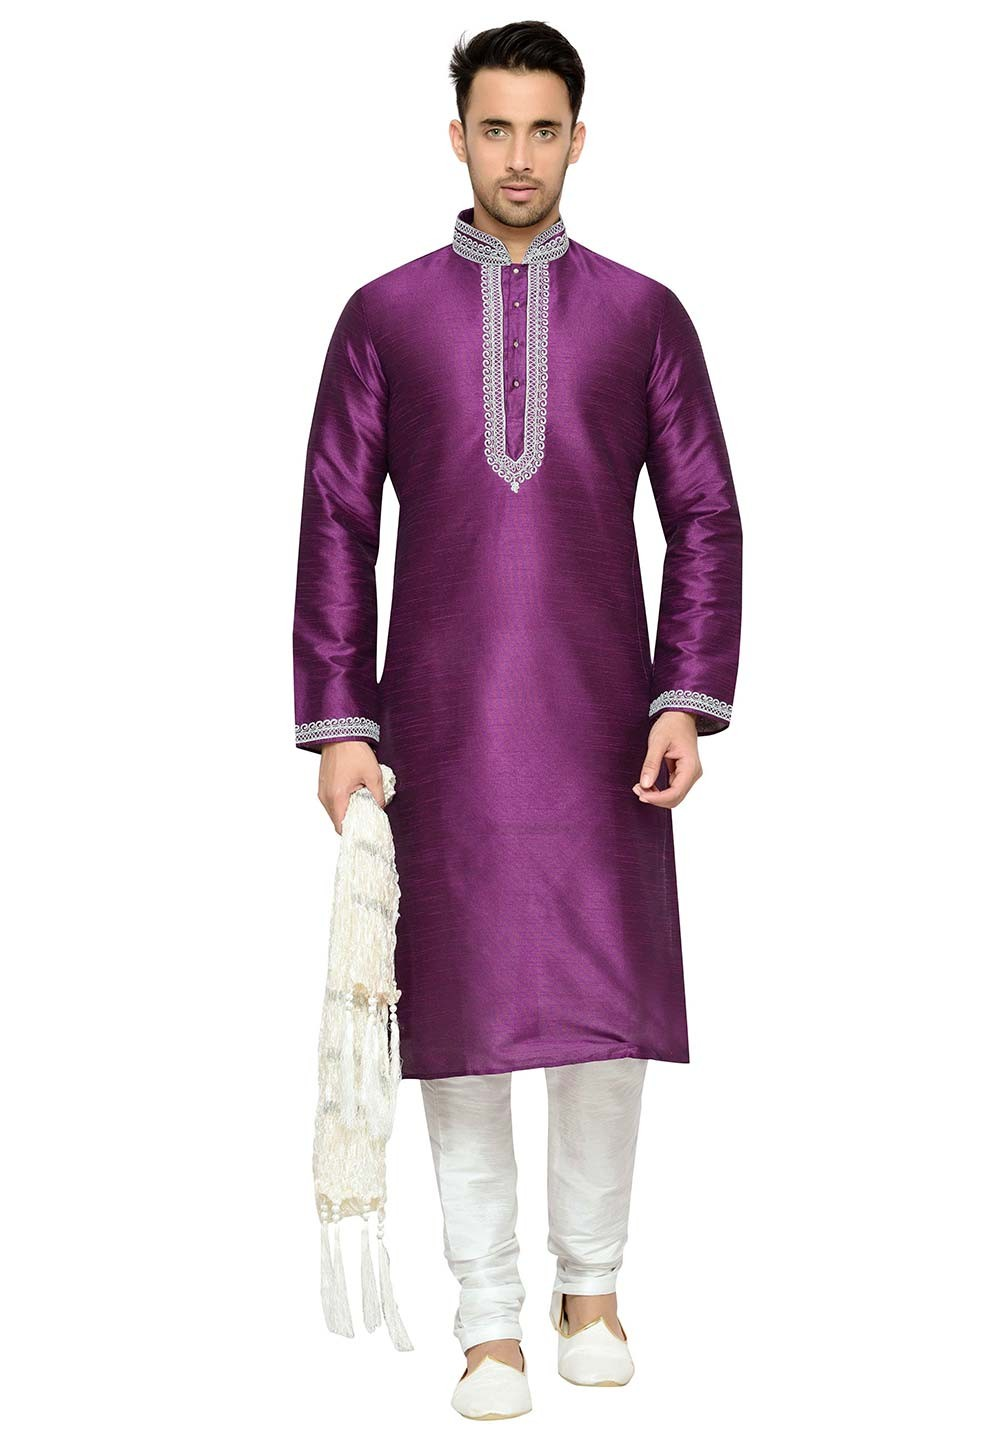 Men's Exquisite Purple Color Dupion Silk Readymade Kurta Pajama With Embroidery Work